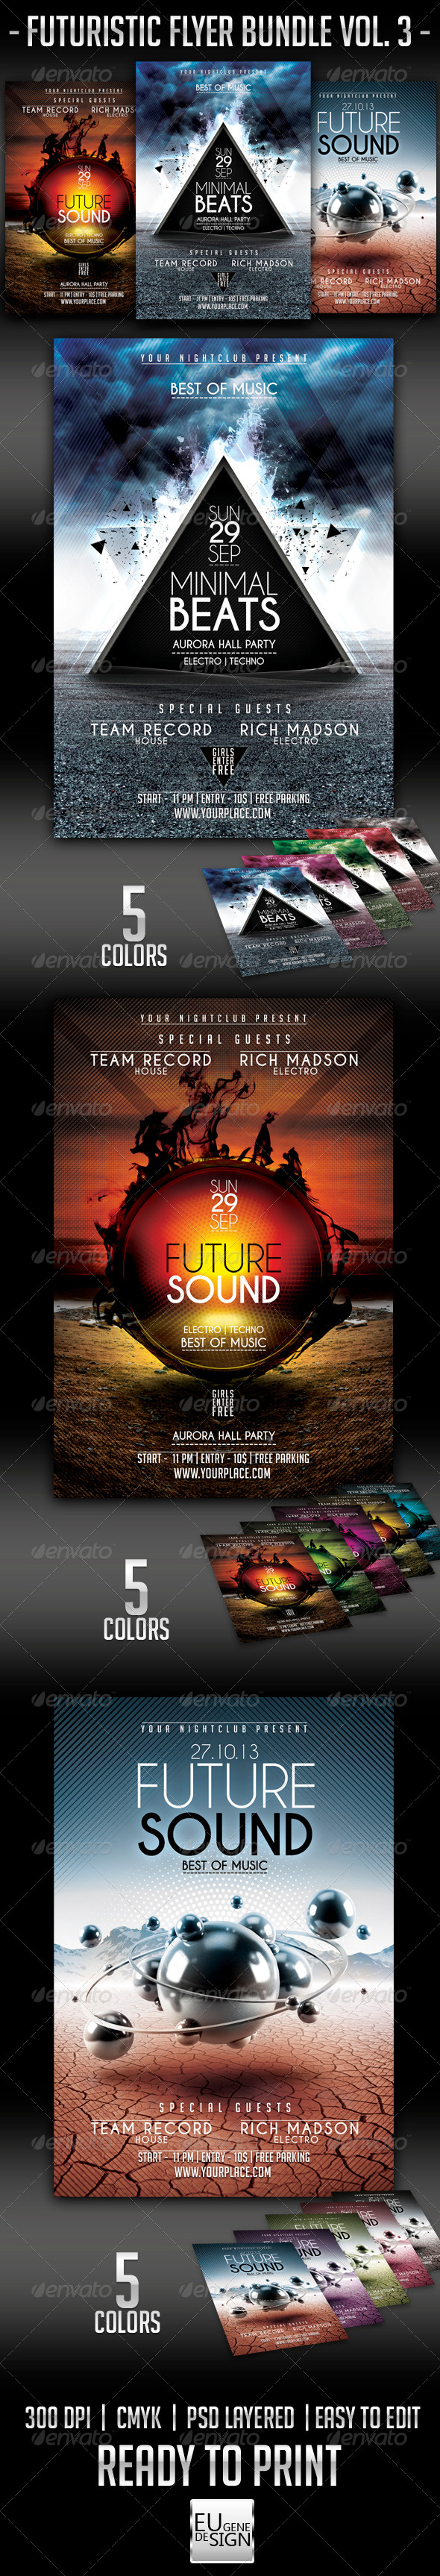 Futuristic Flyer Bundle Vol. 3 - Clubs & Parties Events